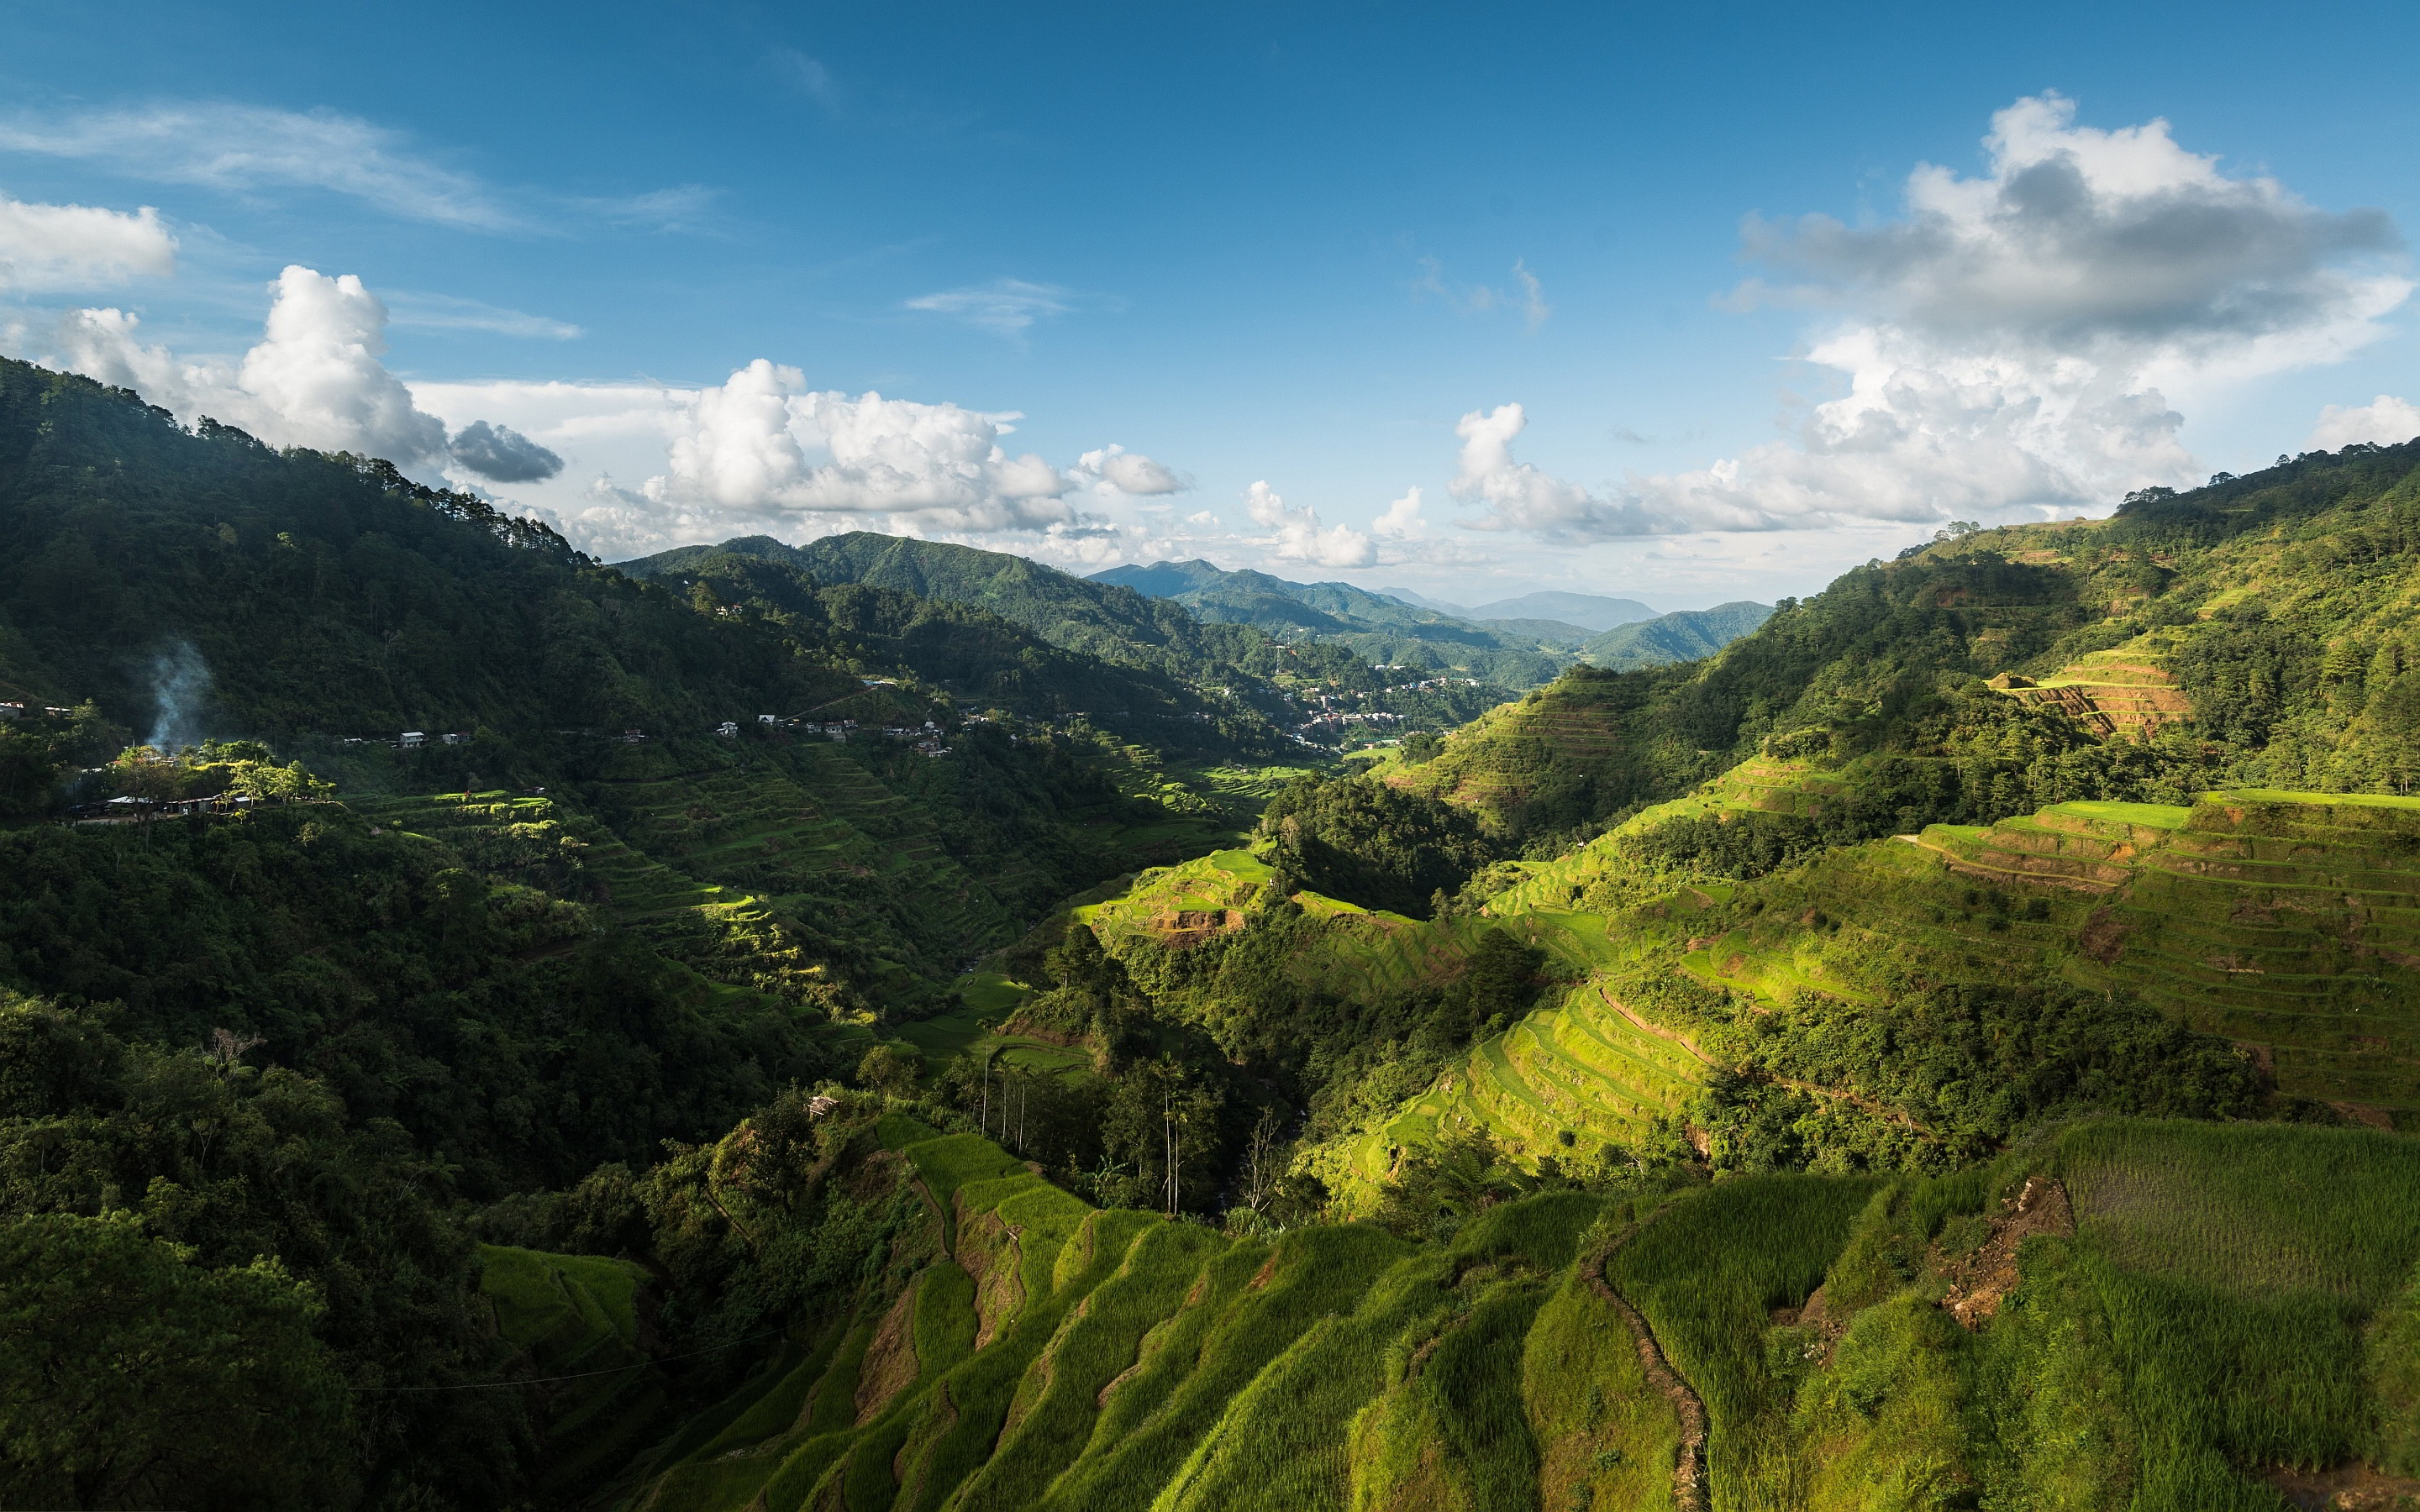 Philippines countryside